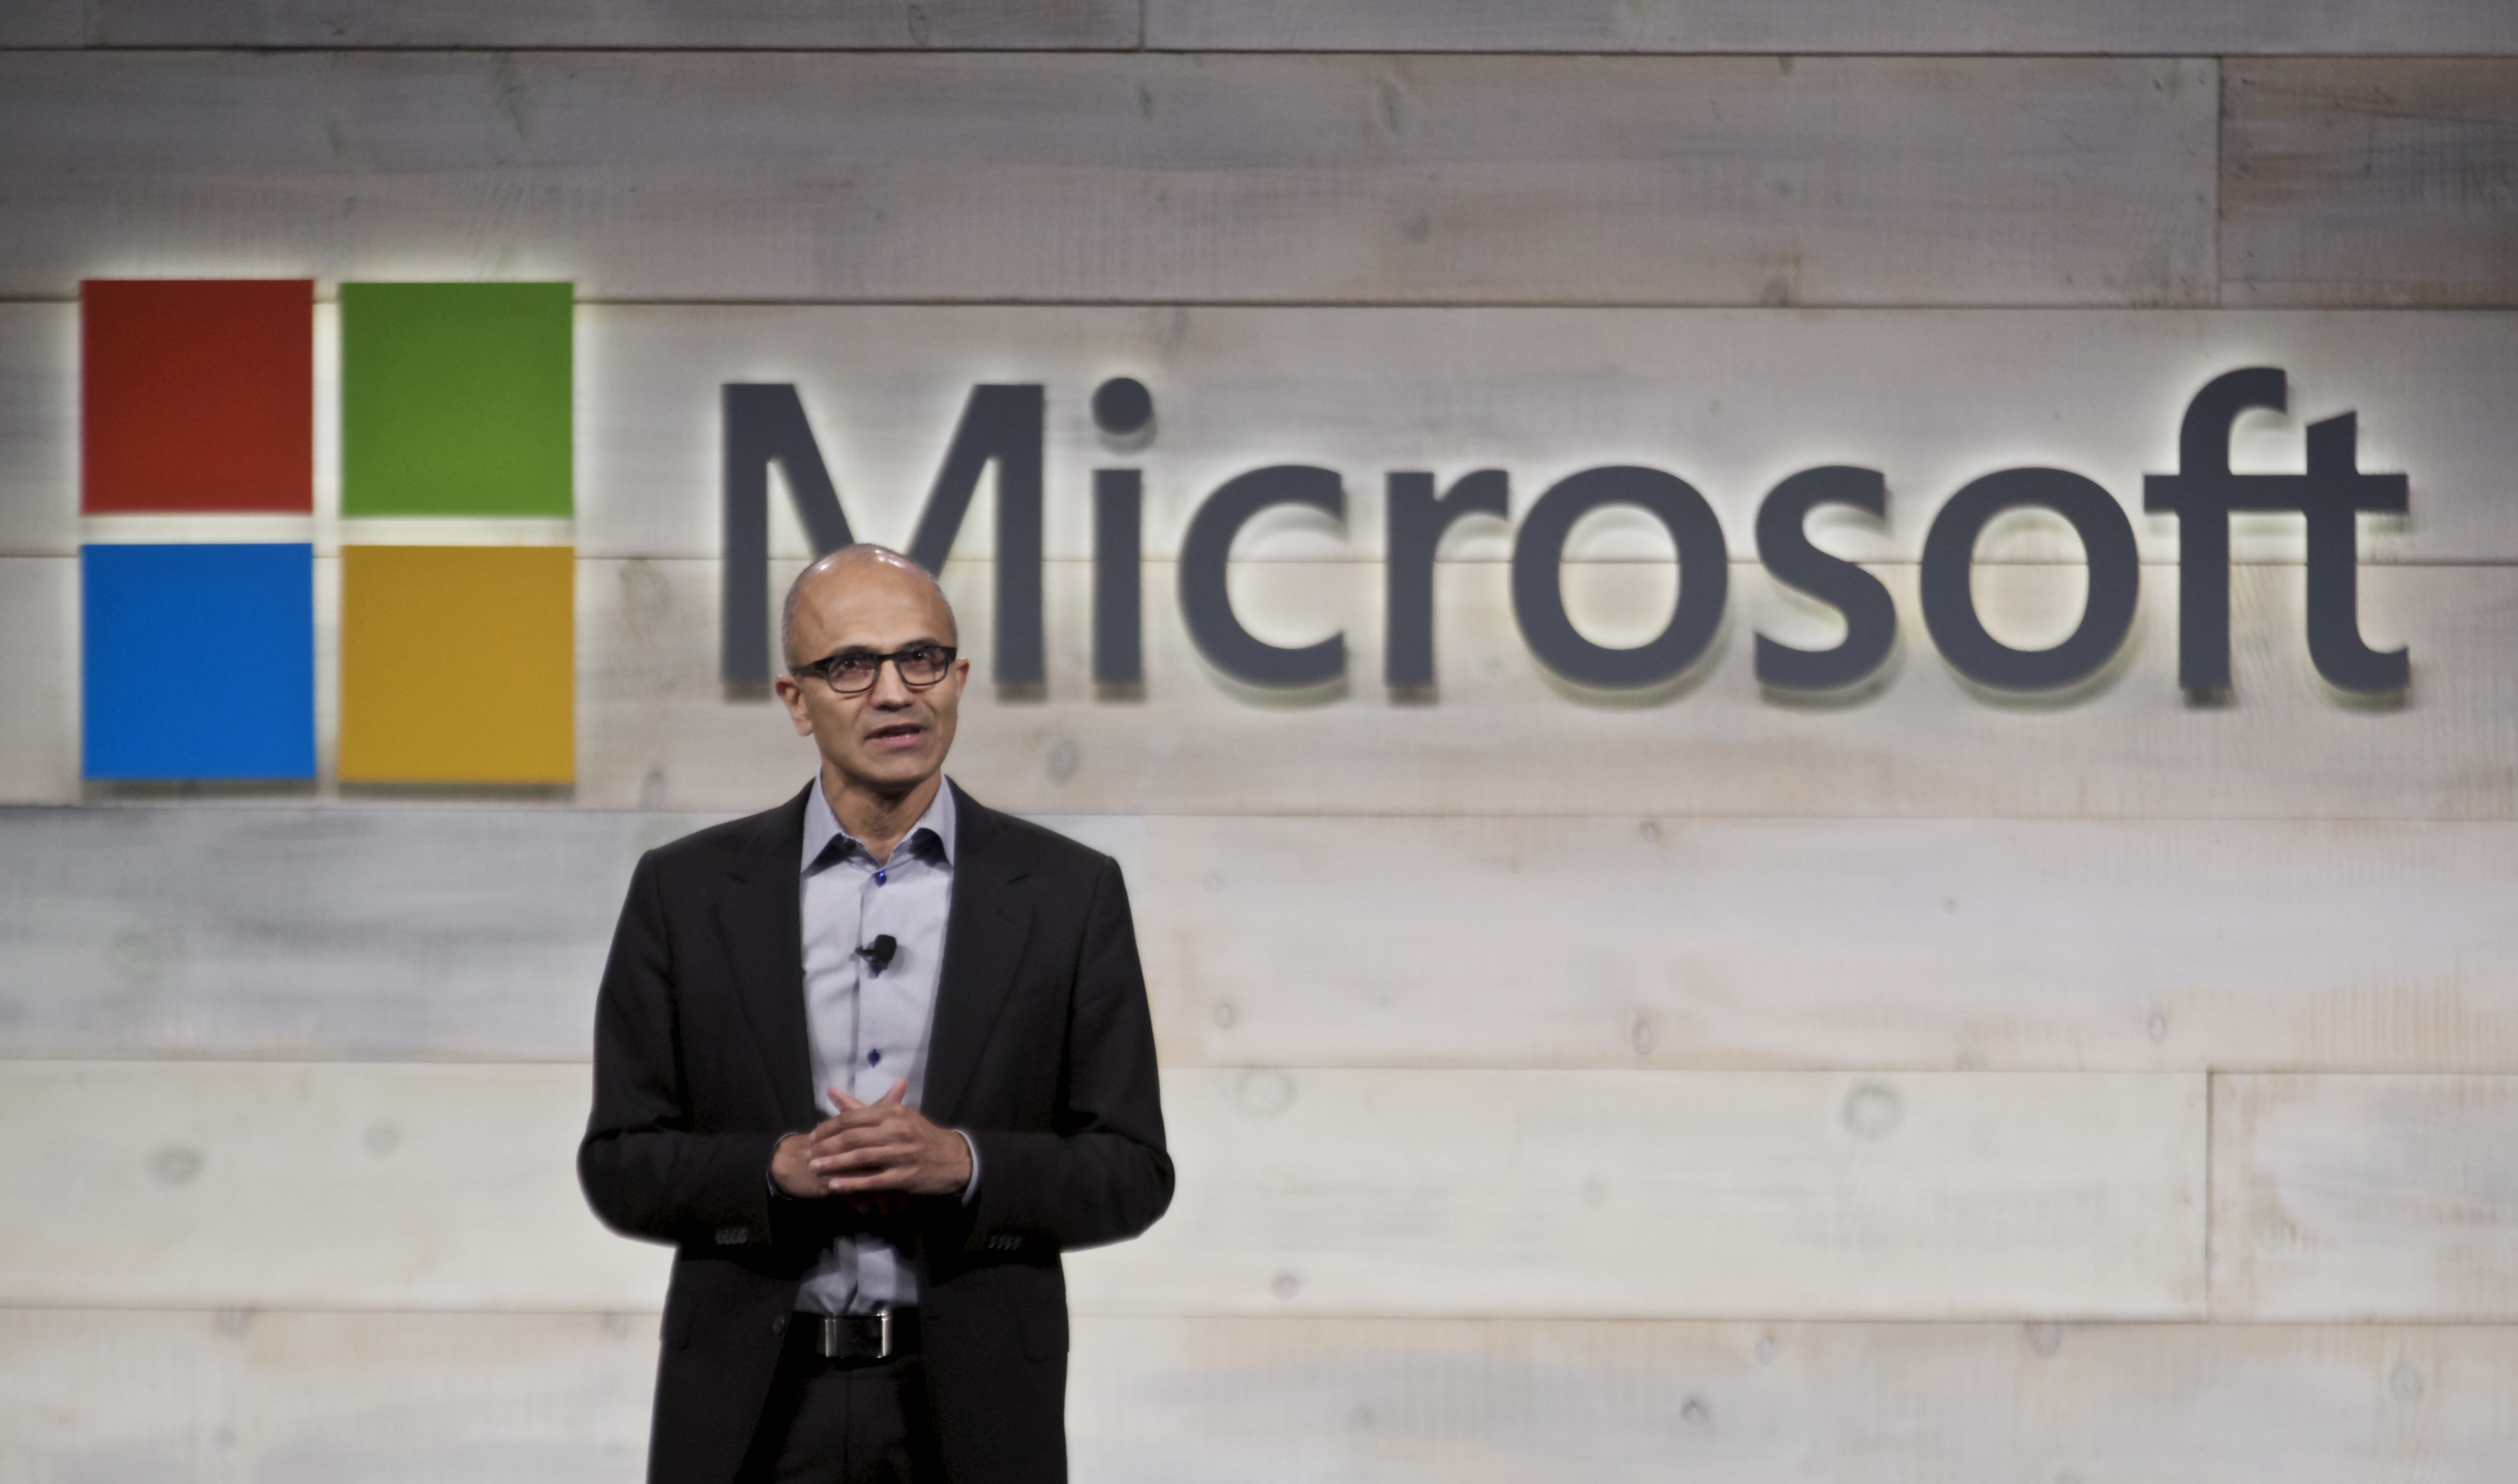 Microsoft CEO Satya Nadella addresses shareholders during Microsoft Shareholders Meeting December 3, 2014 in Bellevue, Washington.